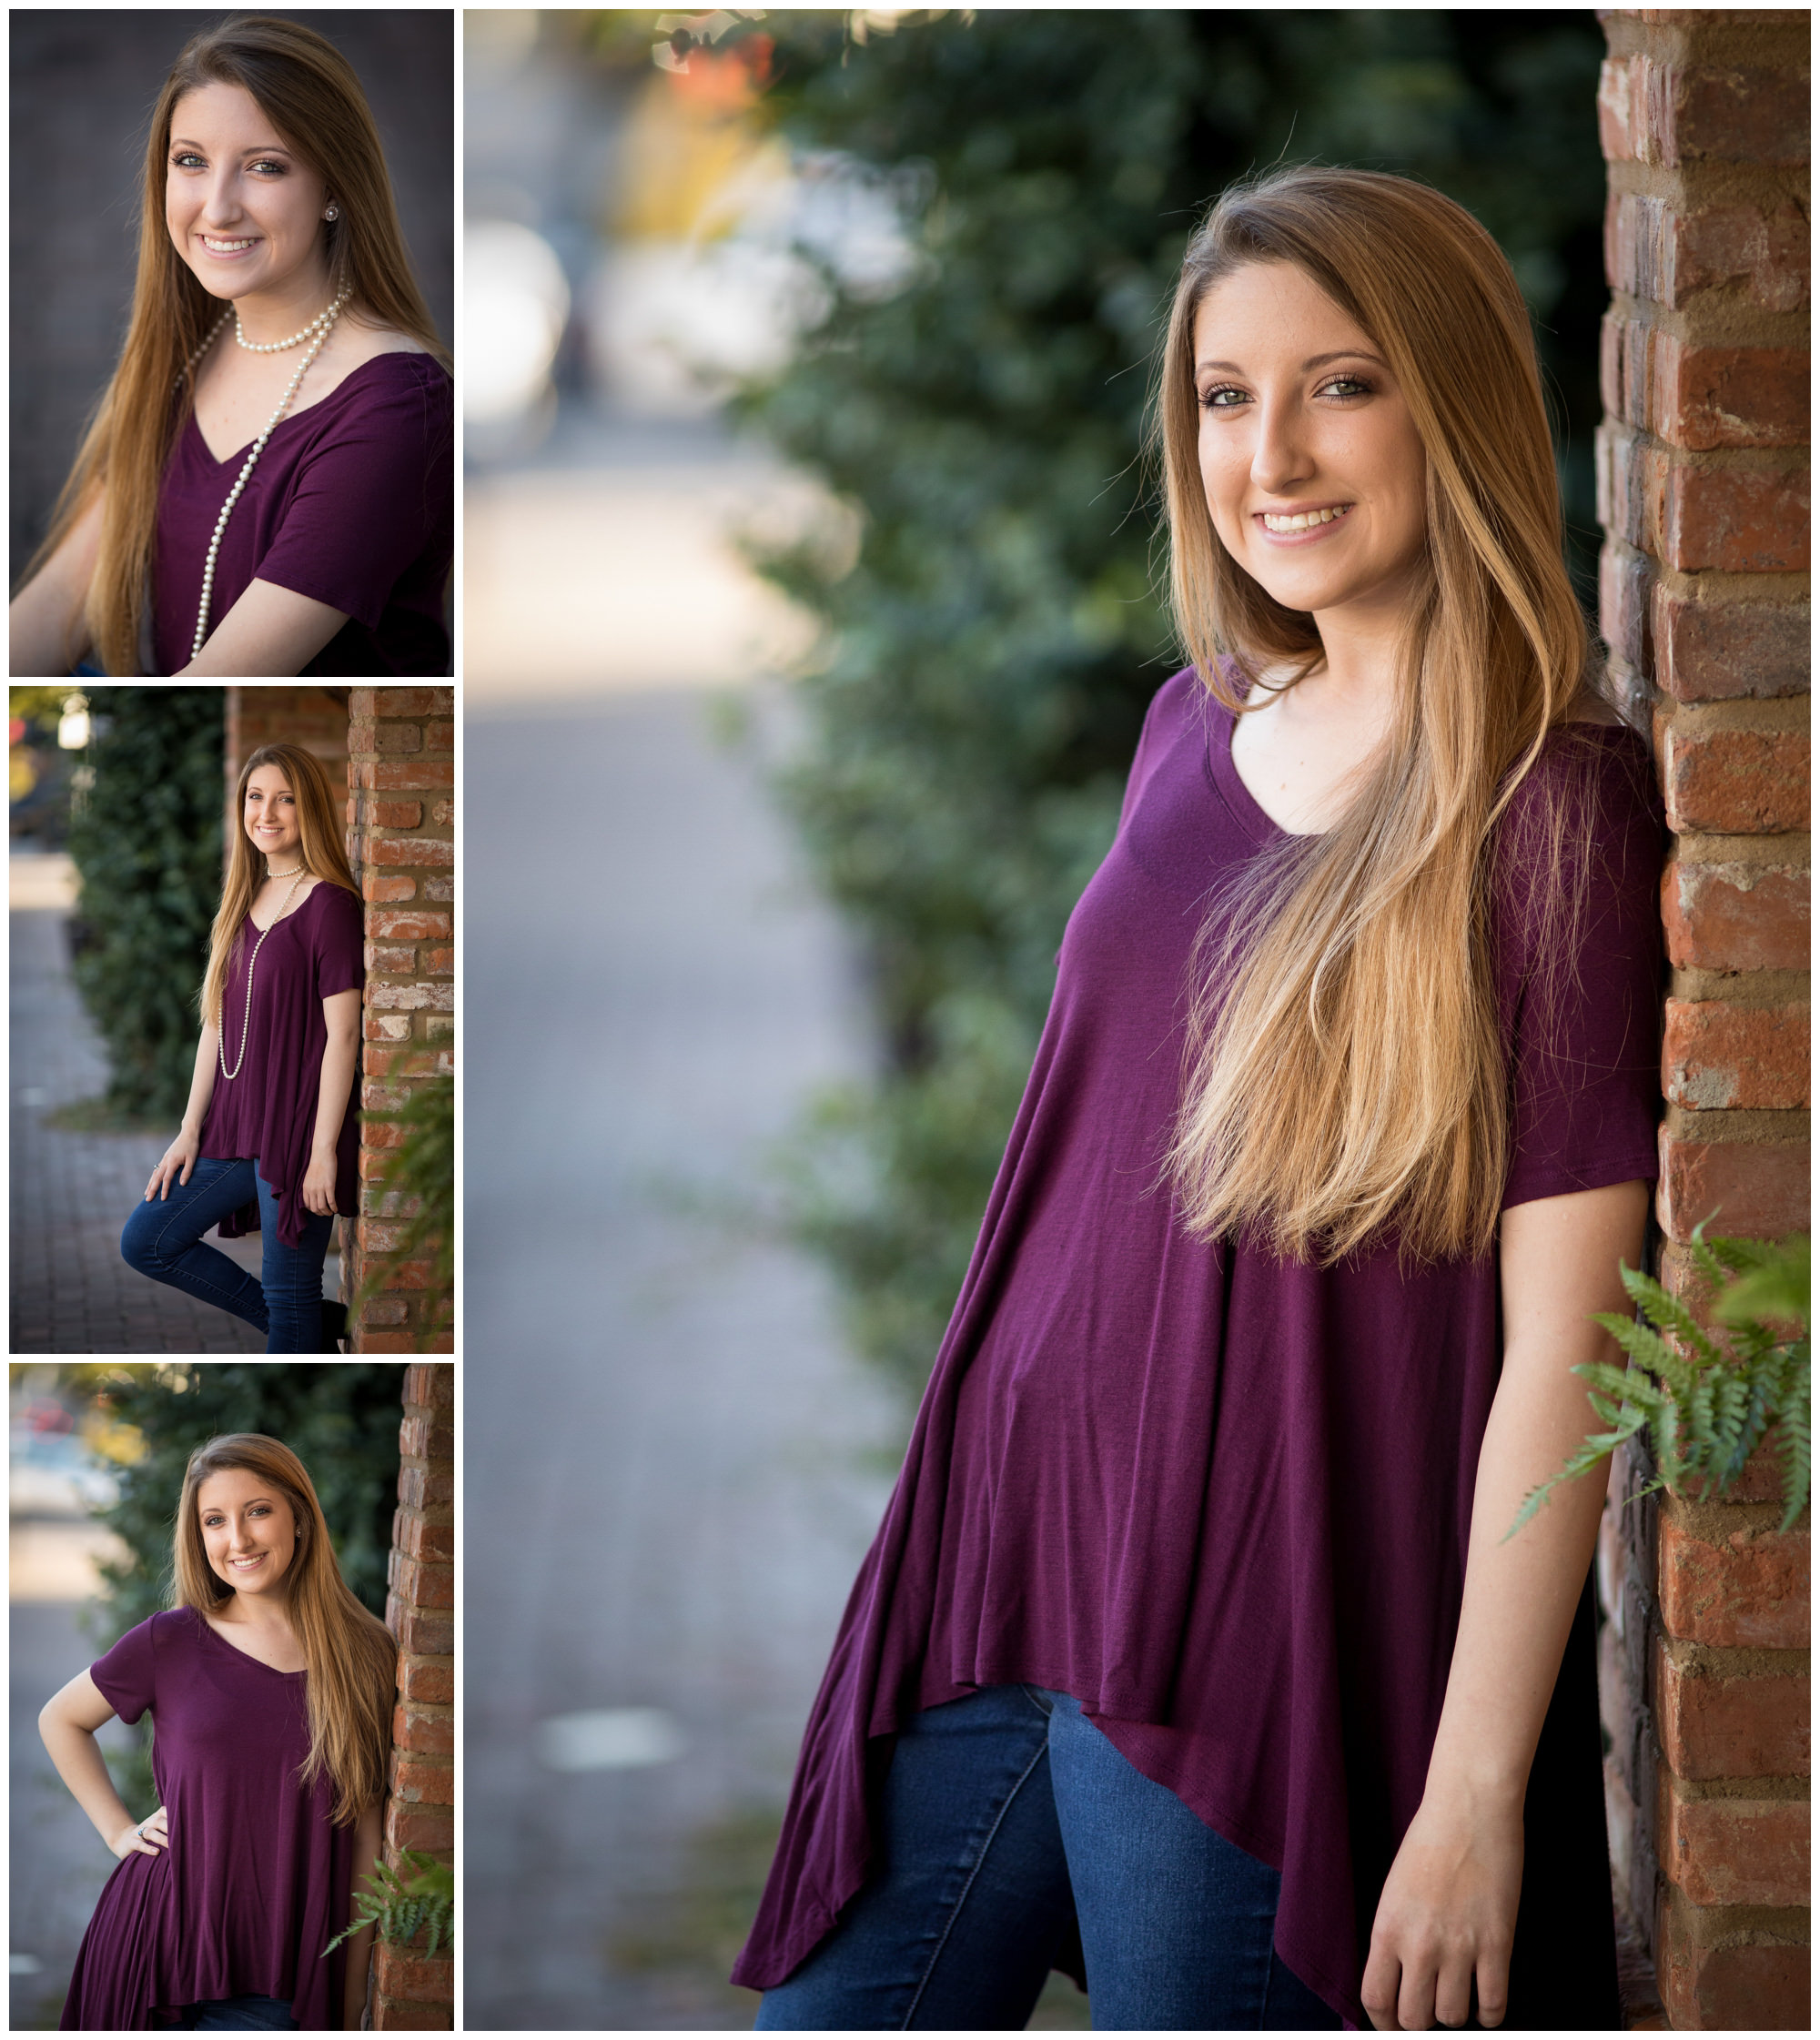 Senior portraits on Foster street in downtown Dothan, AL. Nicole Everson Photography.